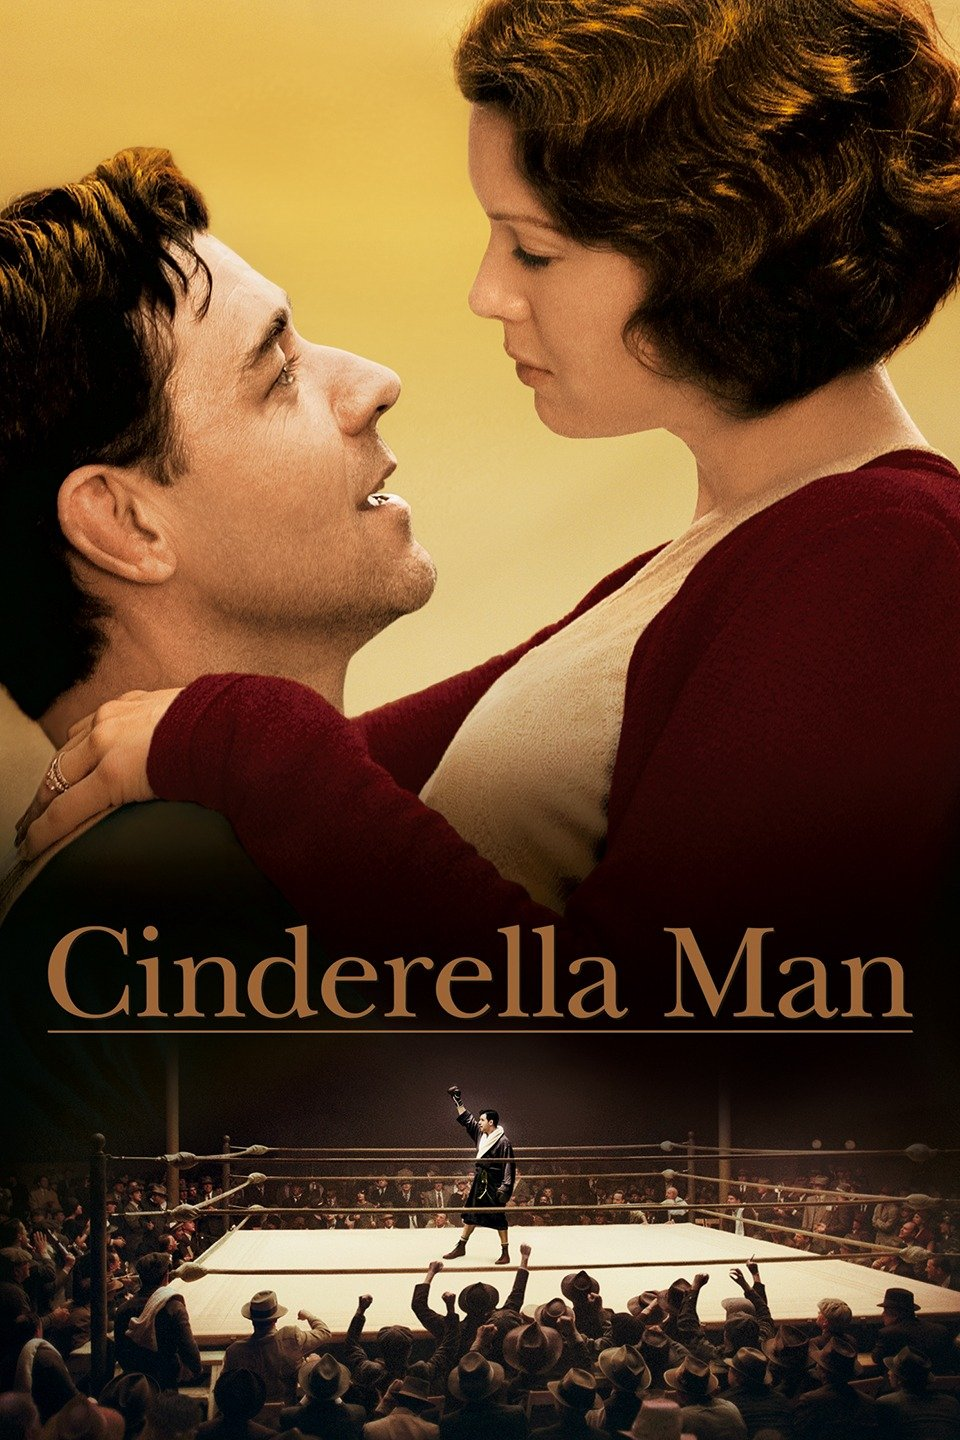 Cinderella Man Movie Sales Person's Outlook Most Important Emotion